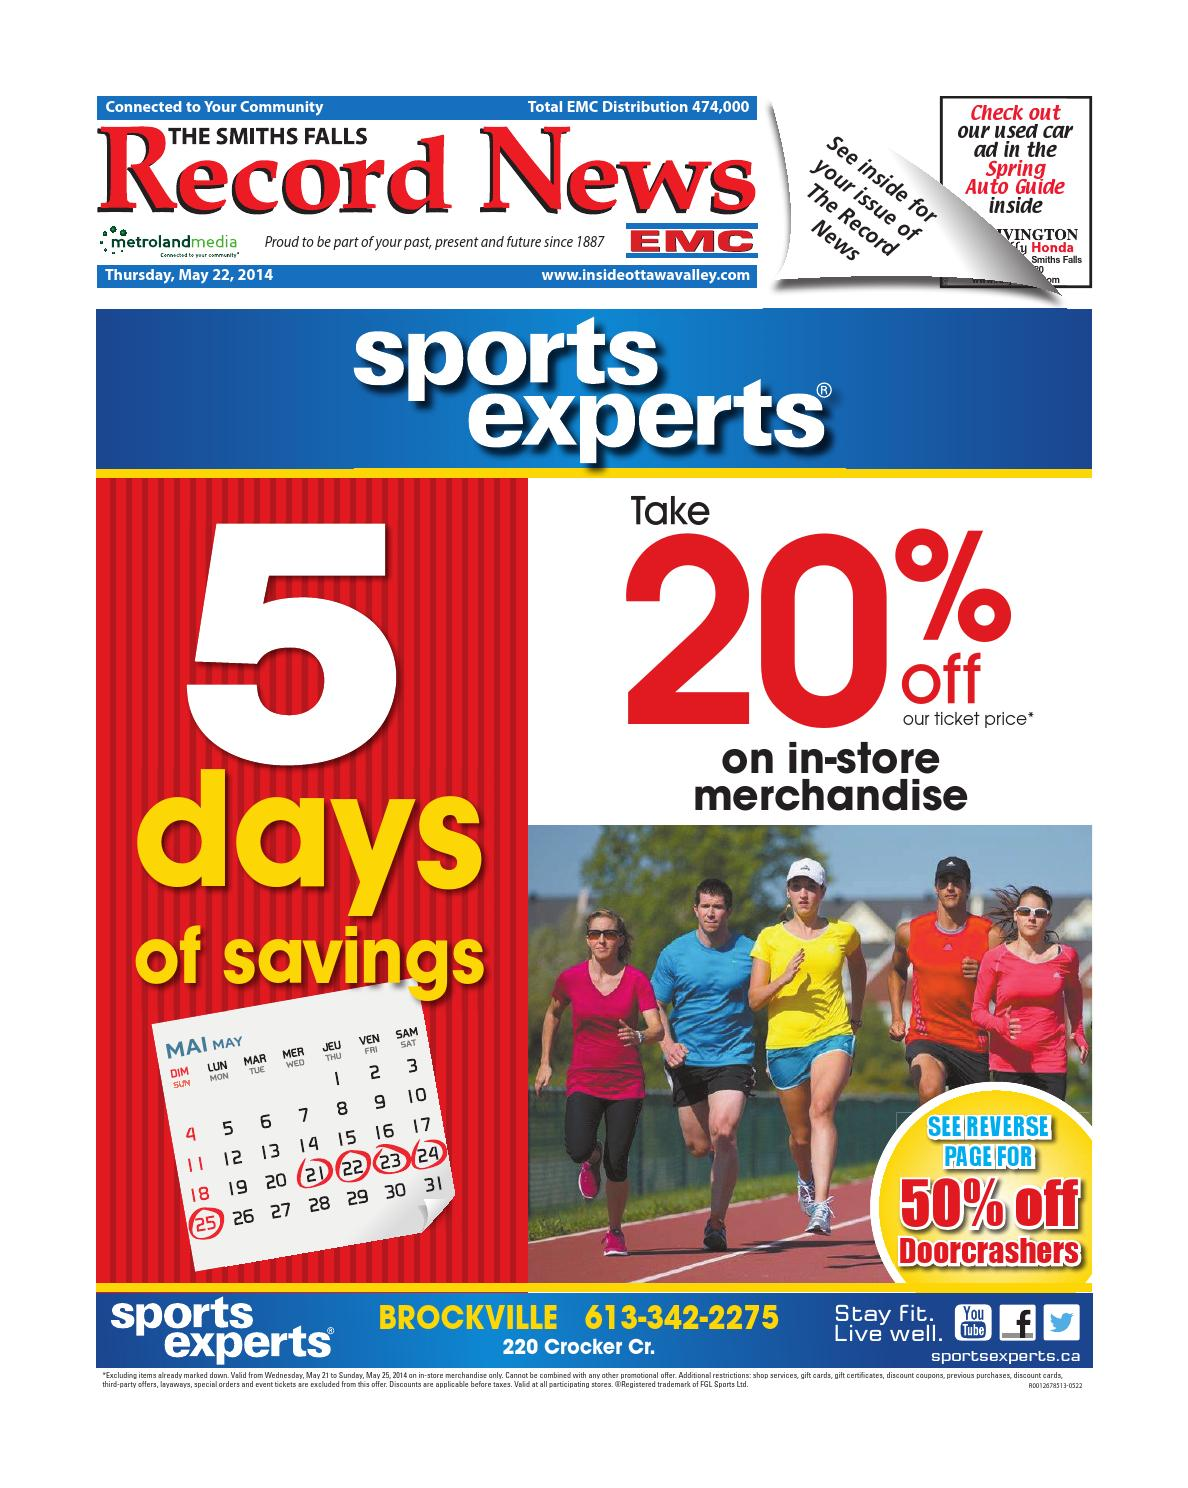 1efb54e22bbe49 Smithsfalls052214 by Metroland East - Smiths Falls Record News - issuu